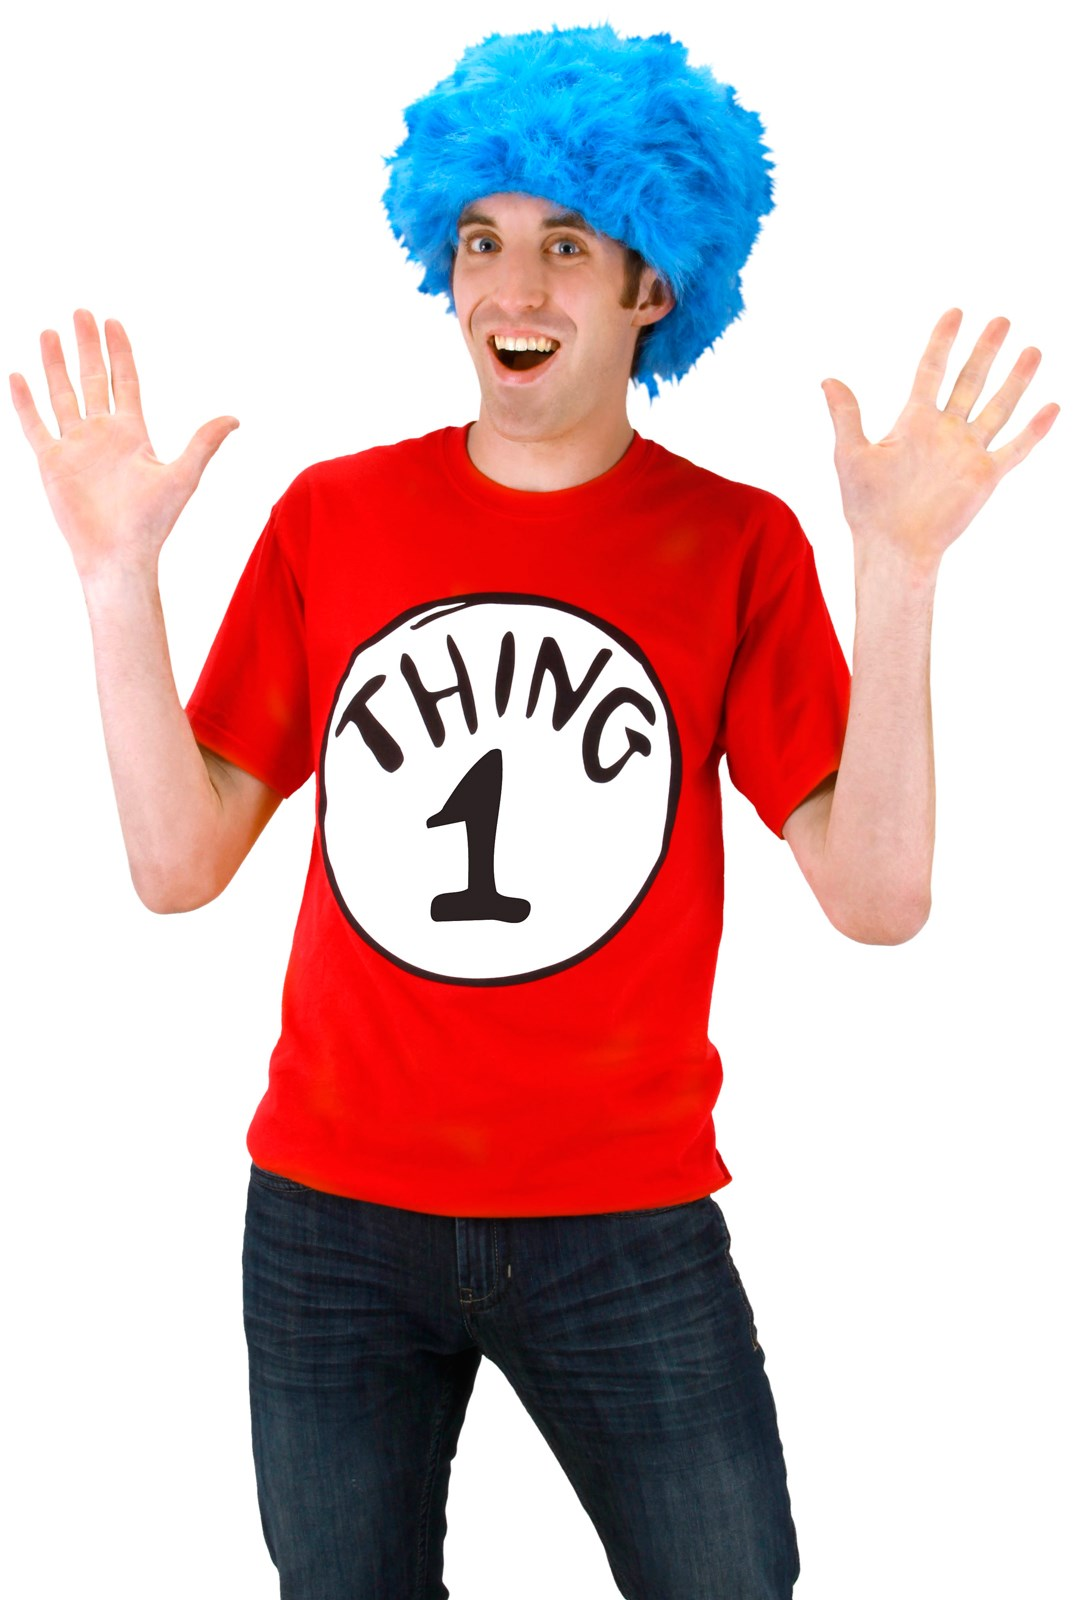 Dr. Seuss Cat In The Hat -Thing 1 Tee Shirt Kit Large